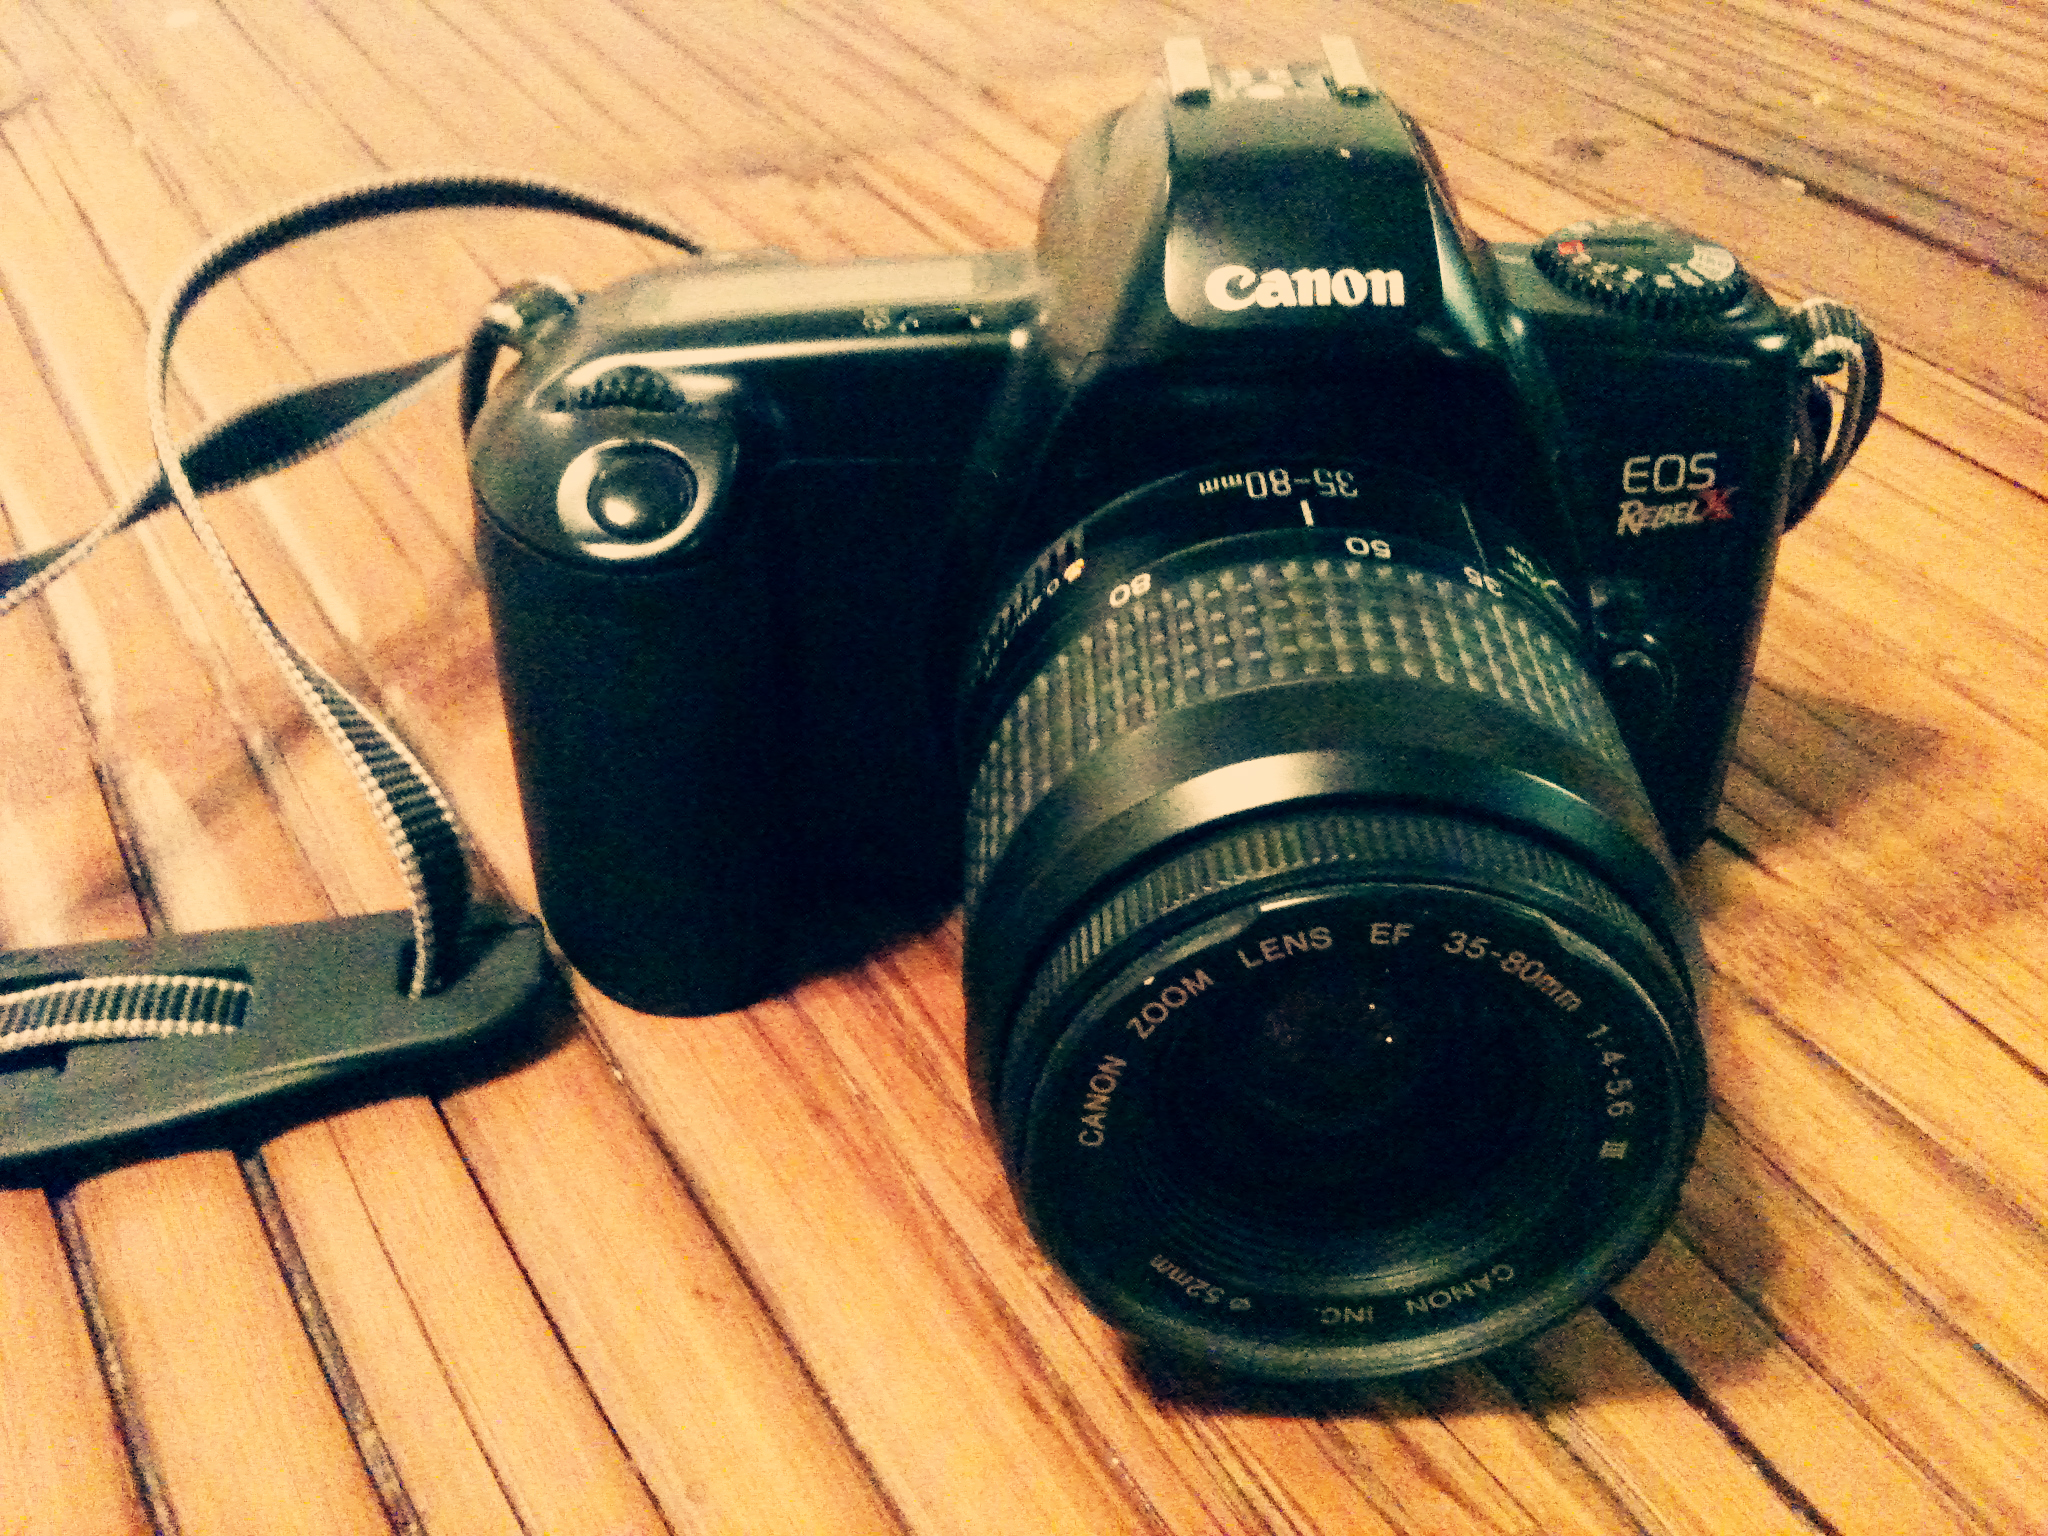 canon t5i 700d experience the still photography guide to operation and image creation with the canon rebel t5i eos 700d